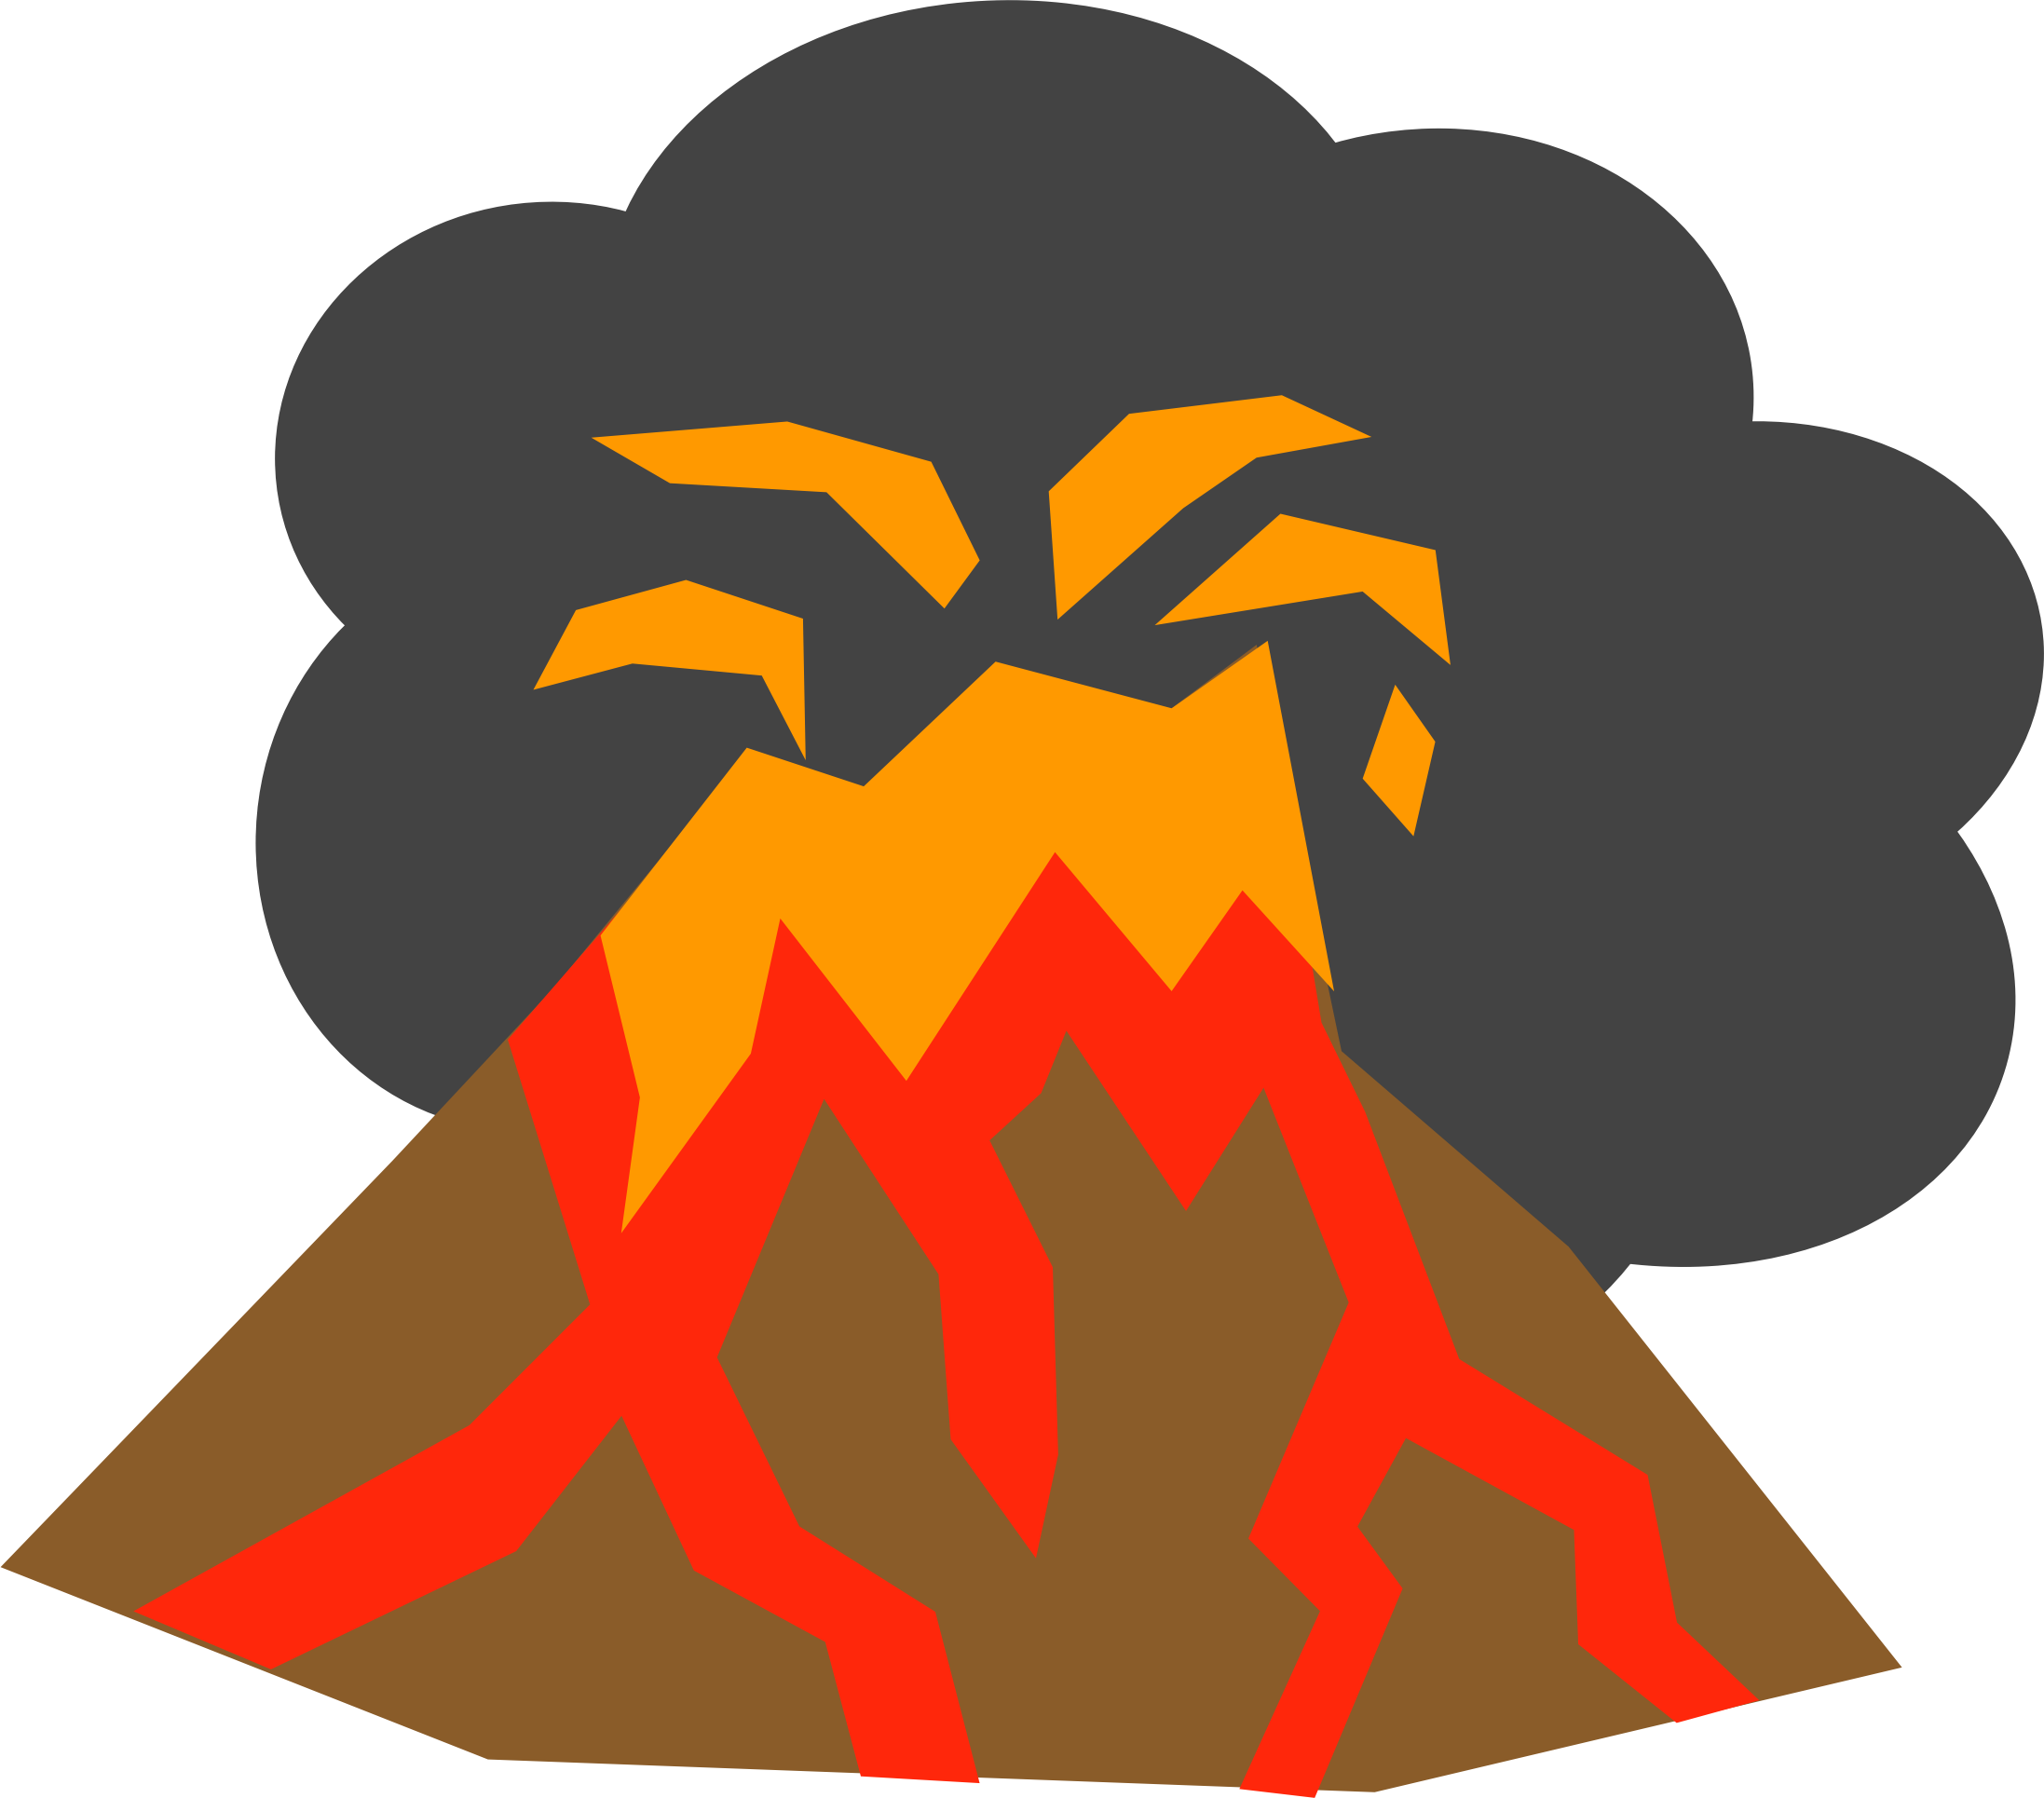 Volcano by Scout